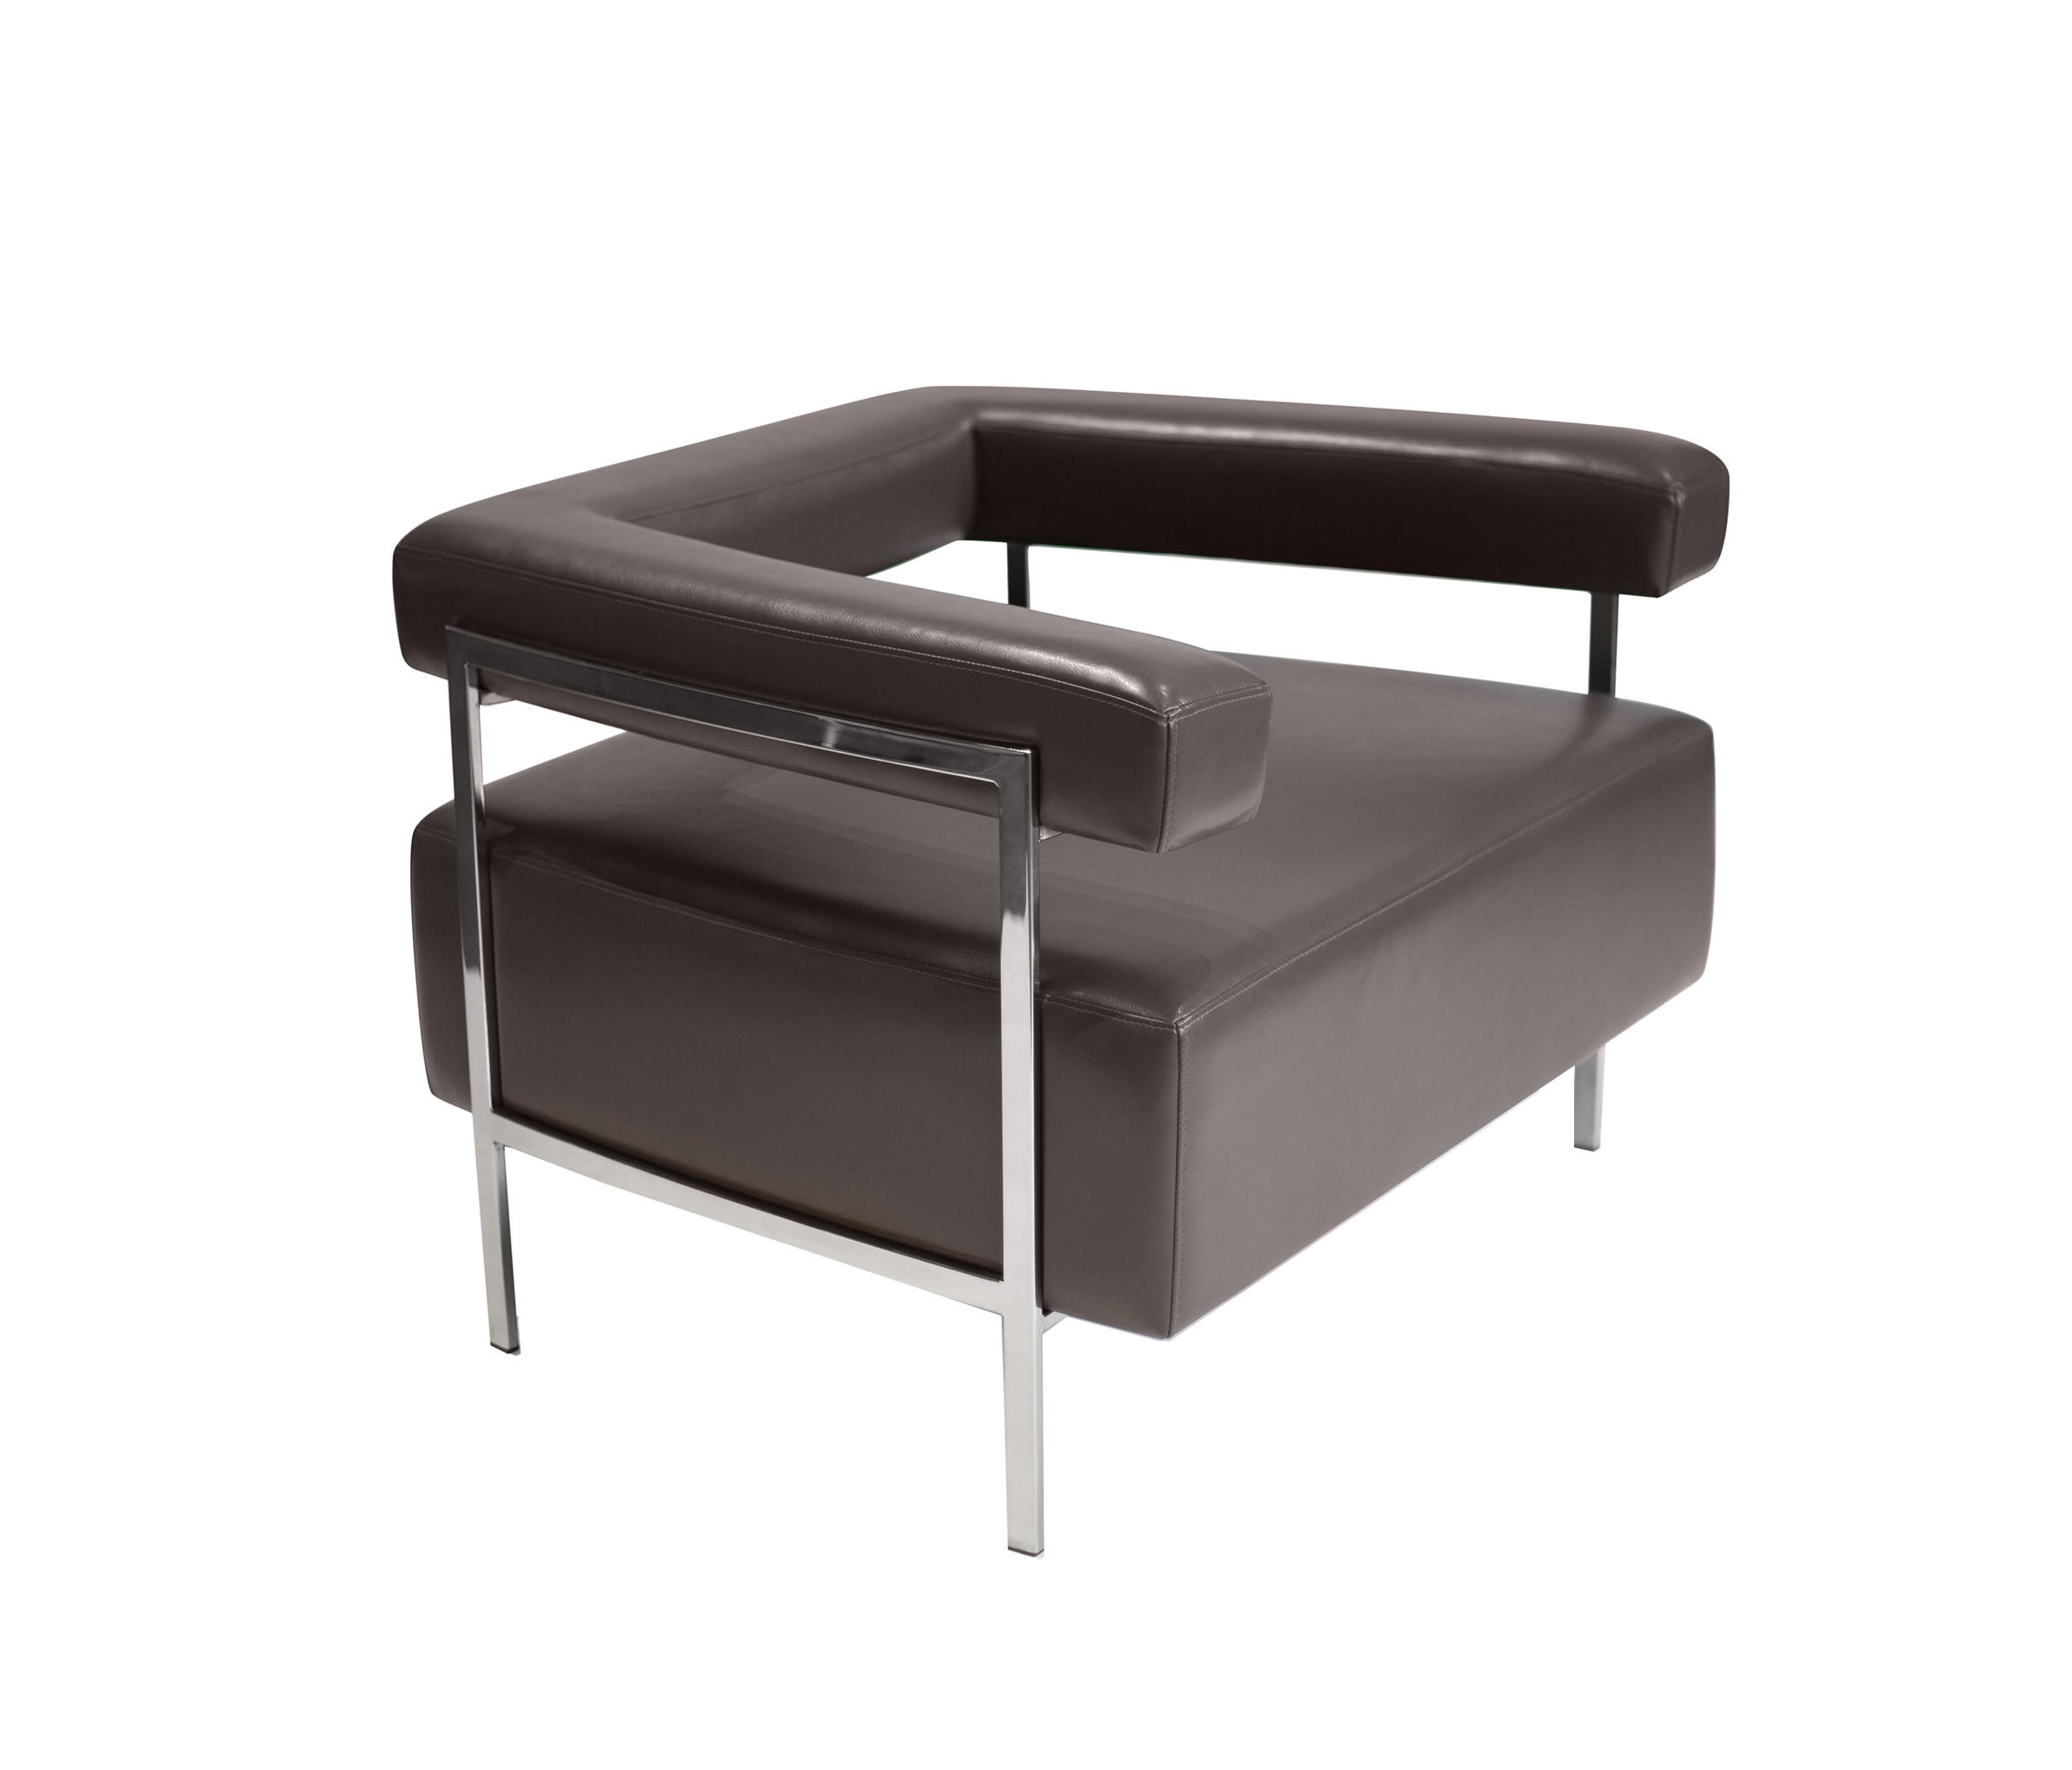 bali sofa lounger cars flip out bed chair lounge chairs from 22 architonic